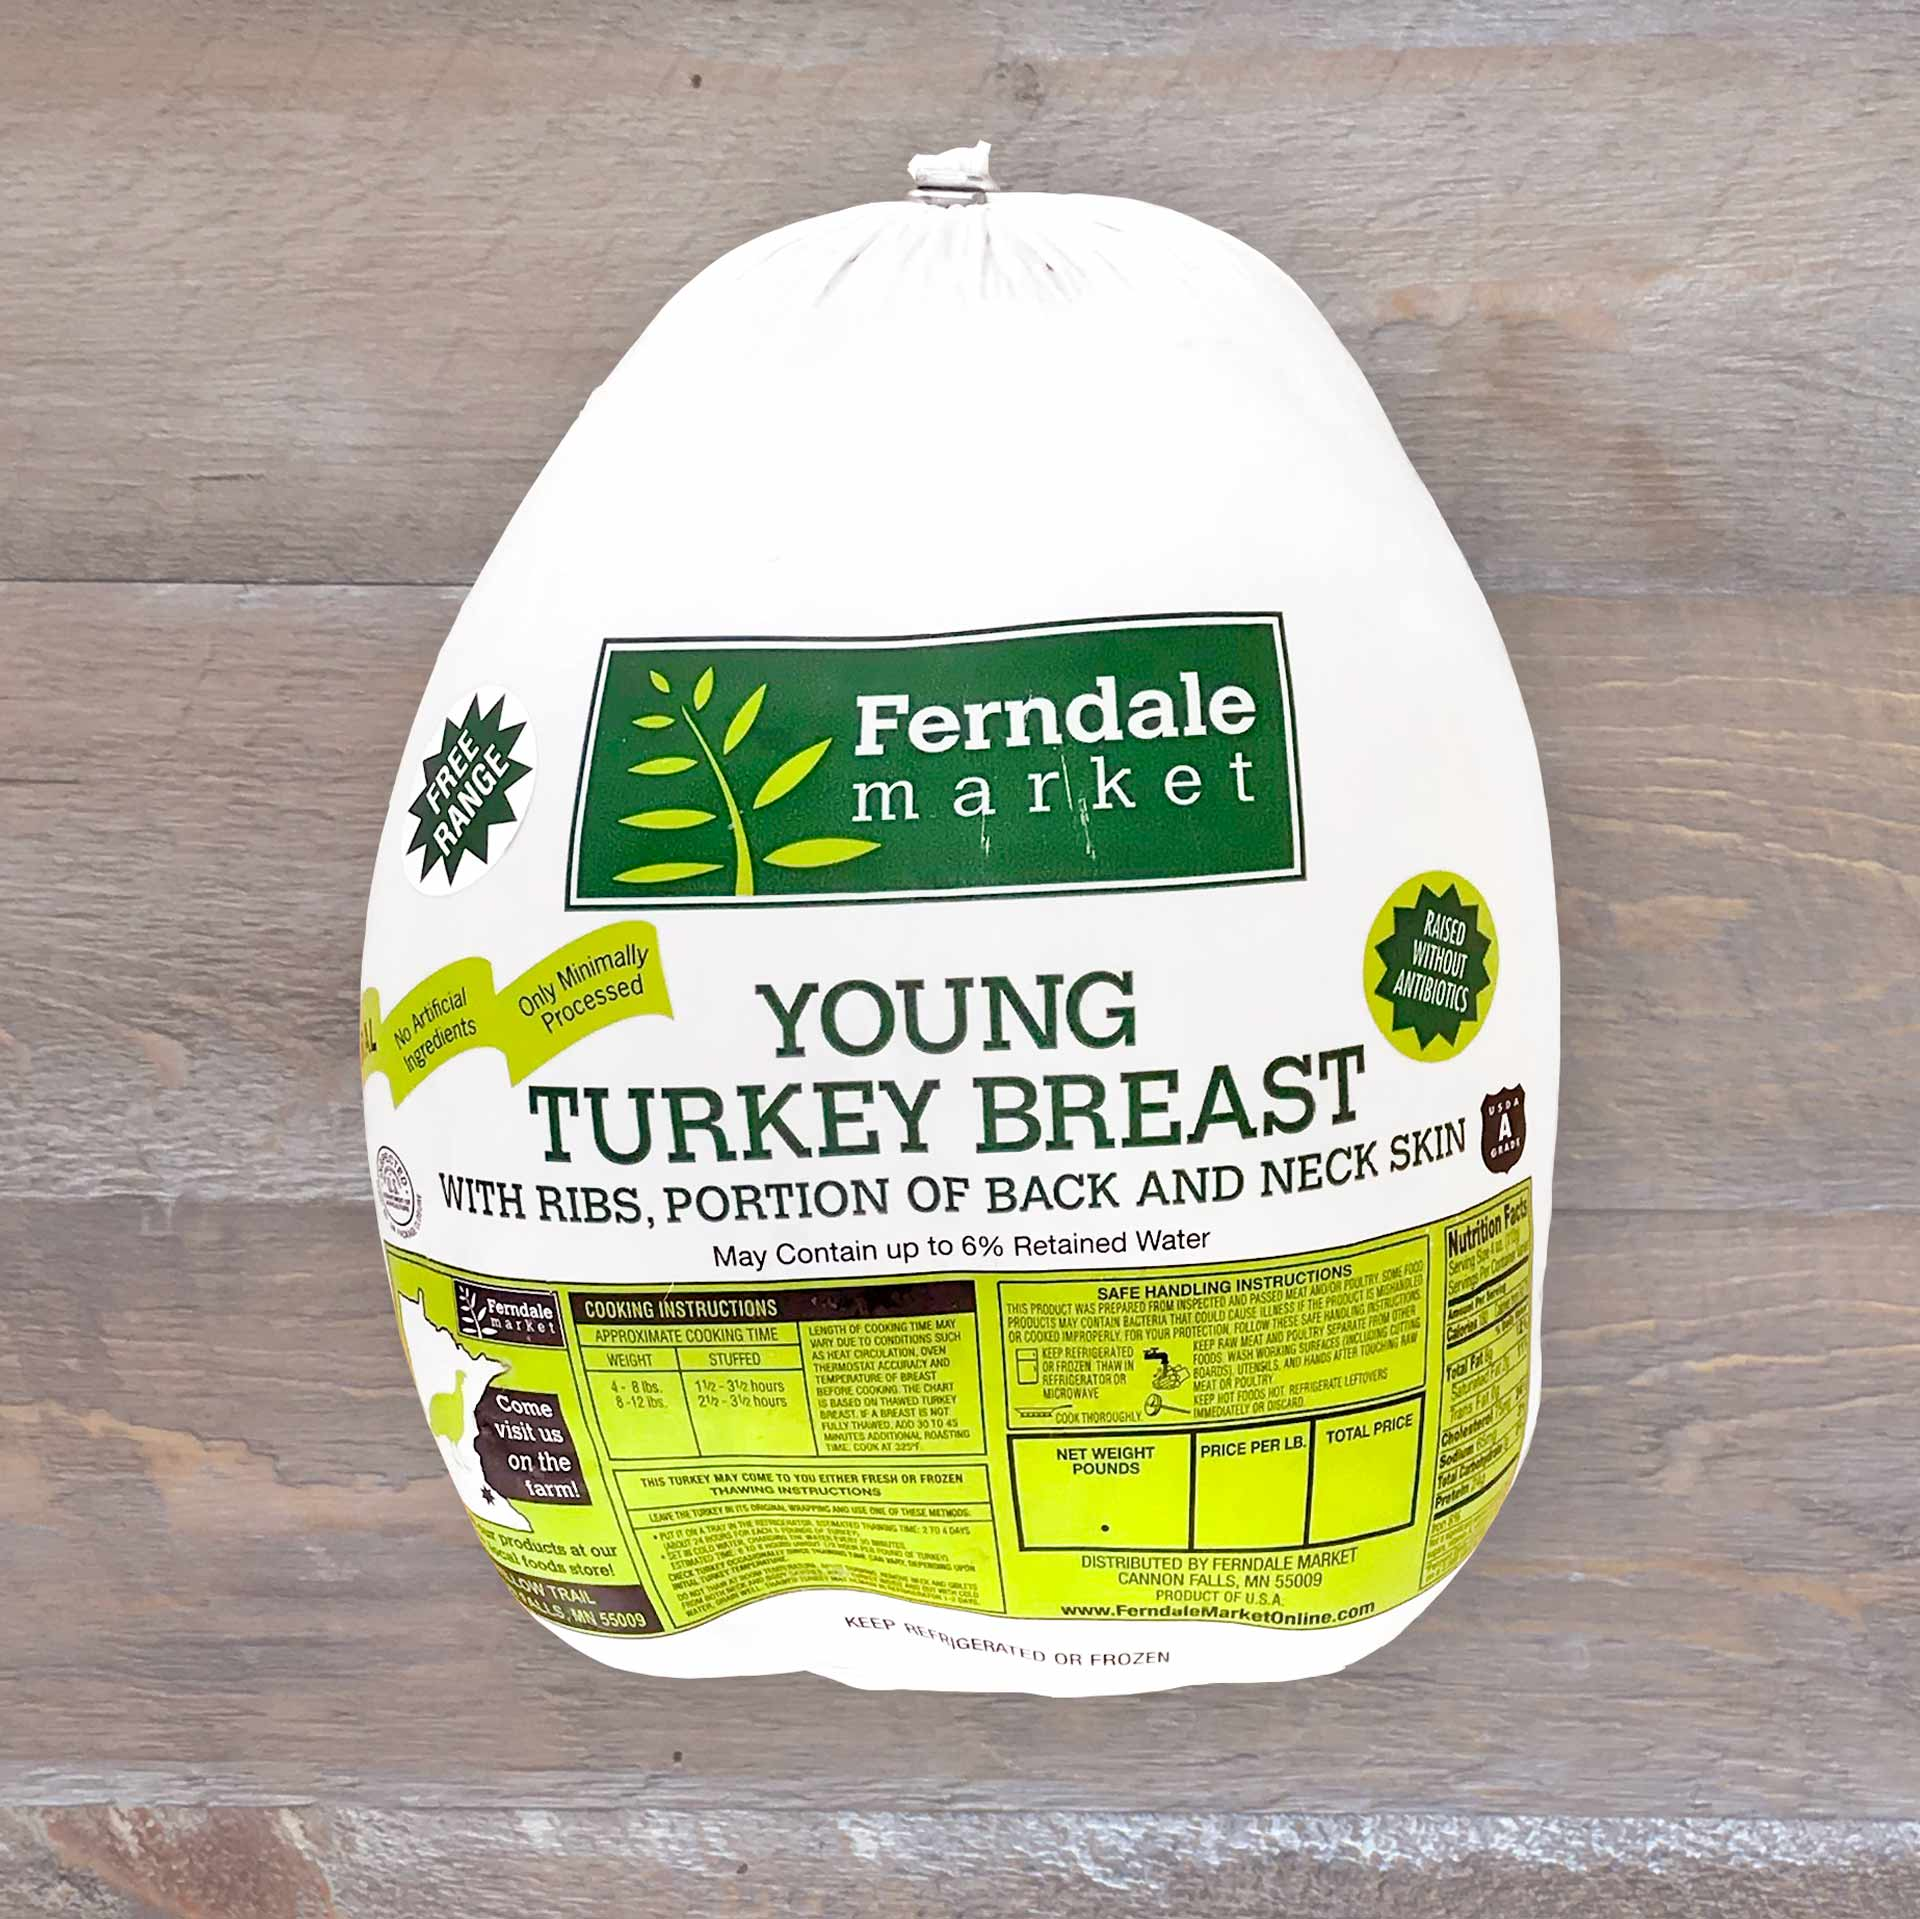 Bone-in Turkey Breast | Ferndale Market